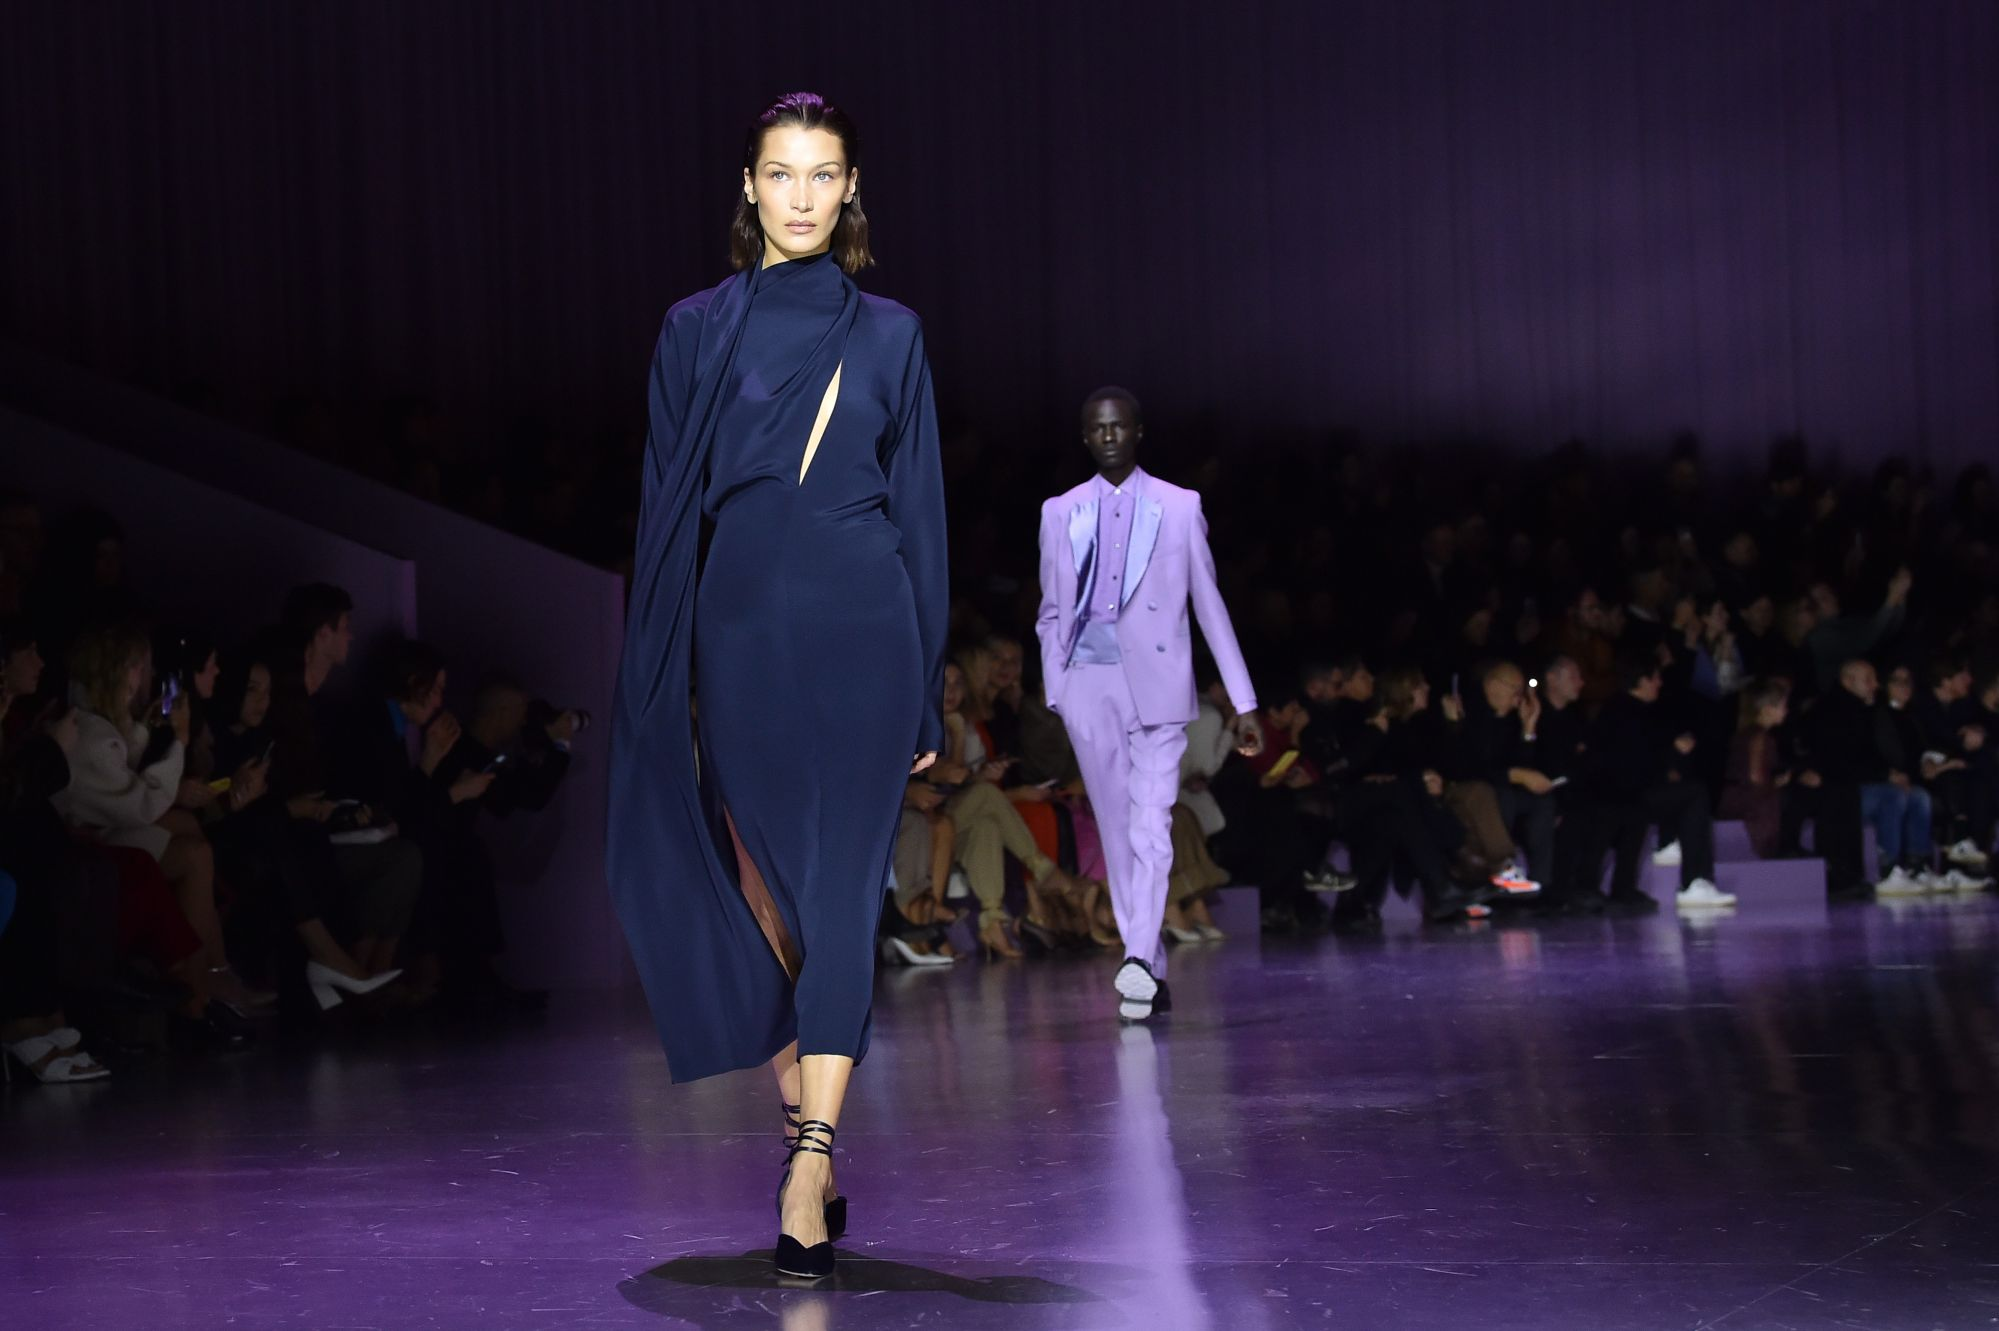 Milan Fashion Week Fall/Winter 2020: Day 4-5 Highlights